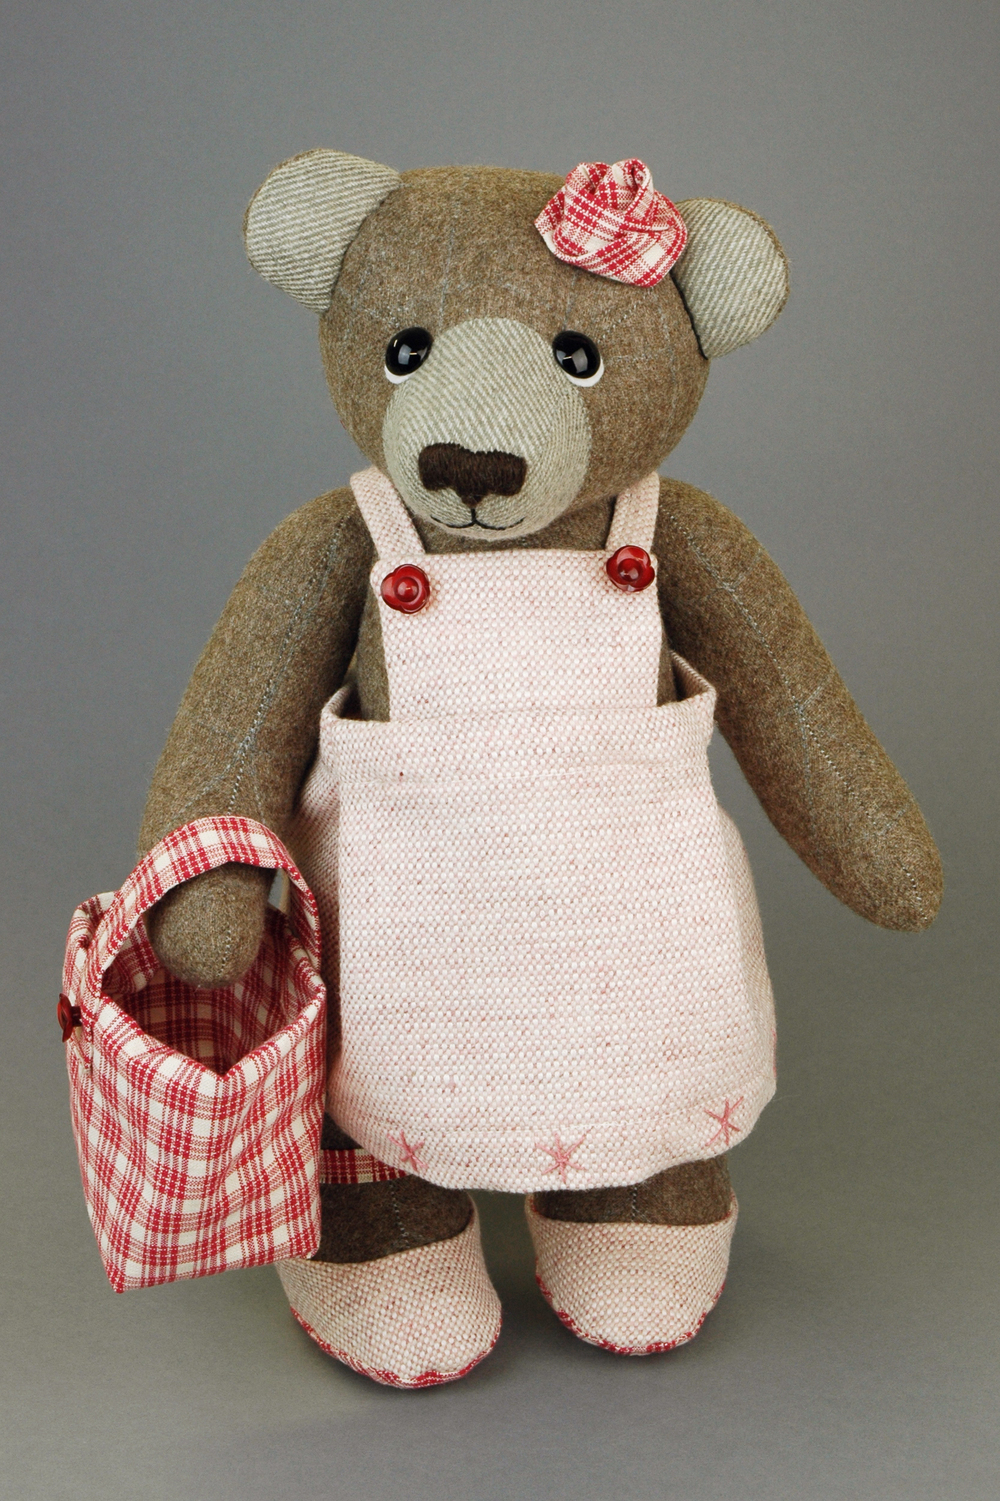 OOAK artist teddy bear Rose by Laura Mirjami